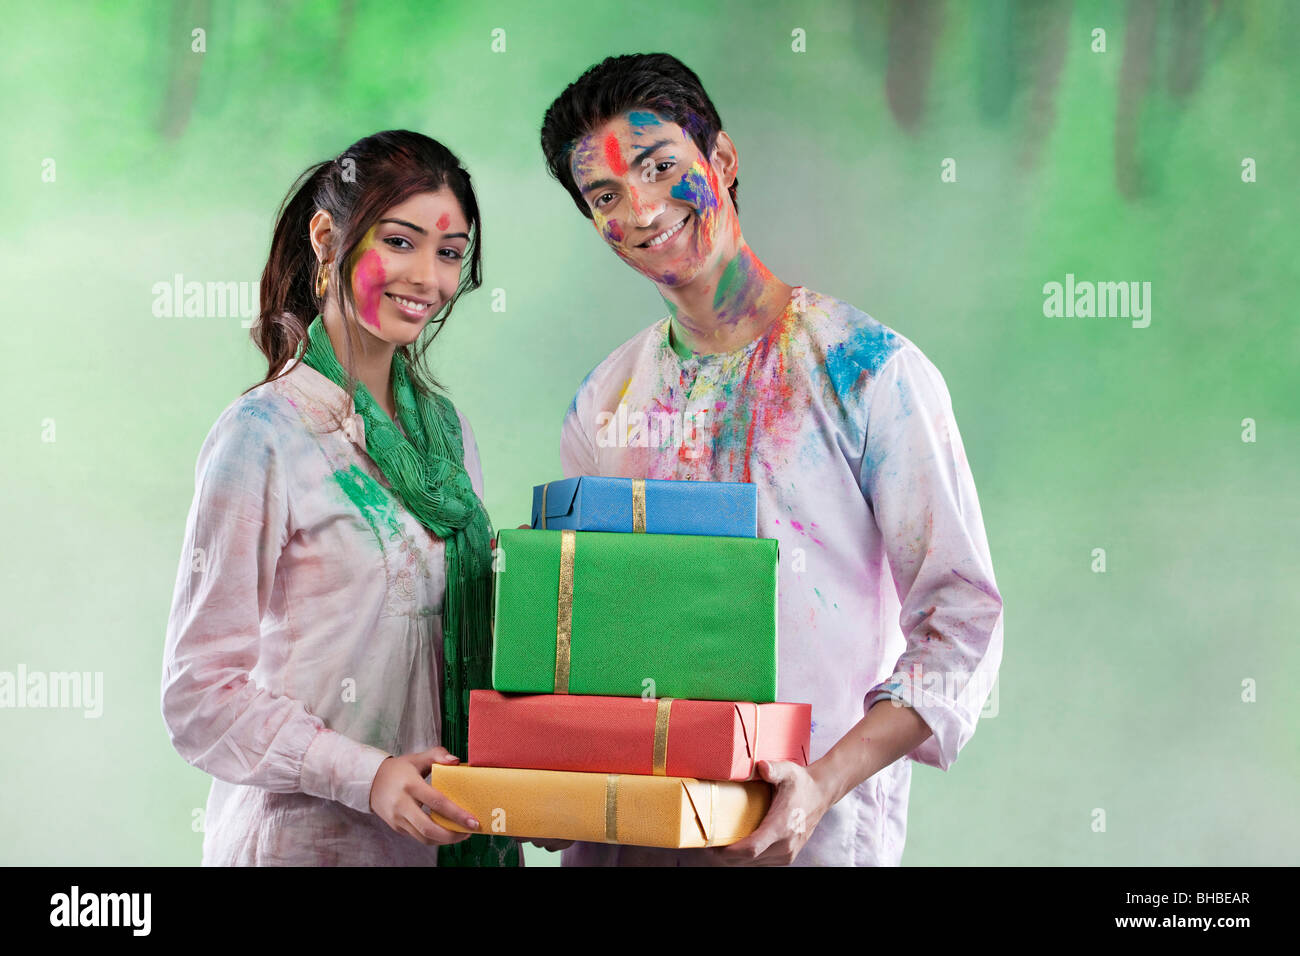 Couple with gifts - Stock Image